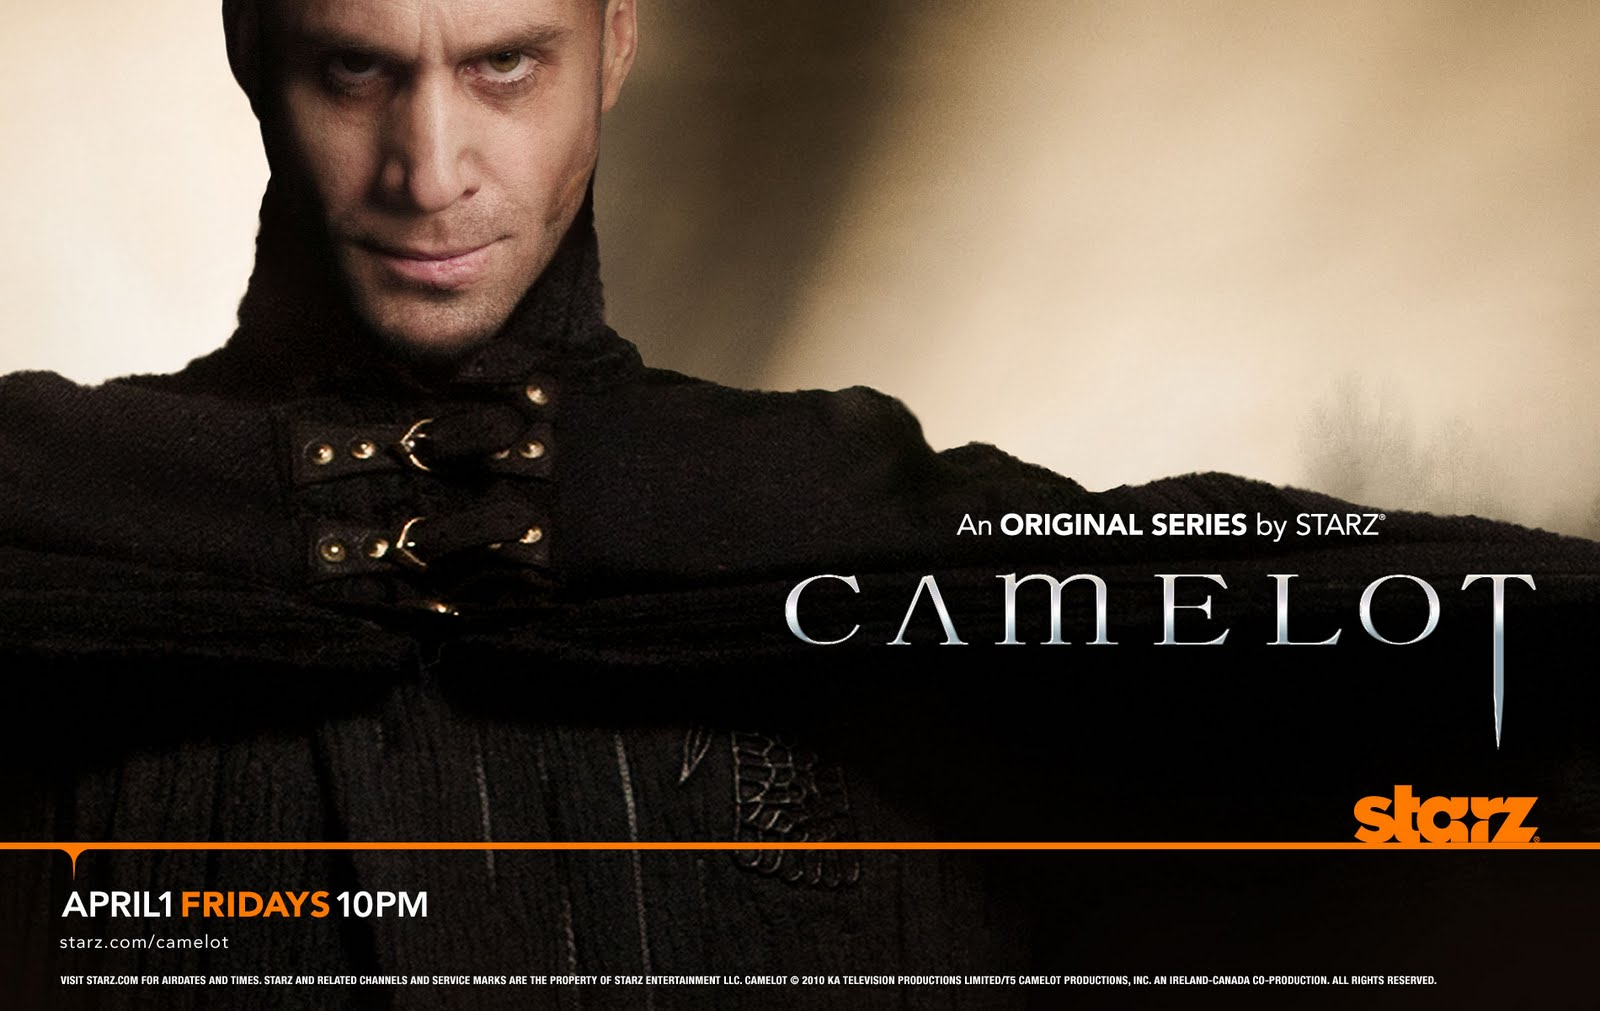 http://4.bp.blogspot.com/-hGd8O0KNzUQ/Th0hNevlUBI/AAAAAAAAIOM/sLbAuoOjcXk/s1600/Camelot_TV-Show_HD_Wallpaper_1920x1200%2B3.jpg